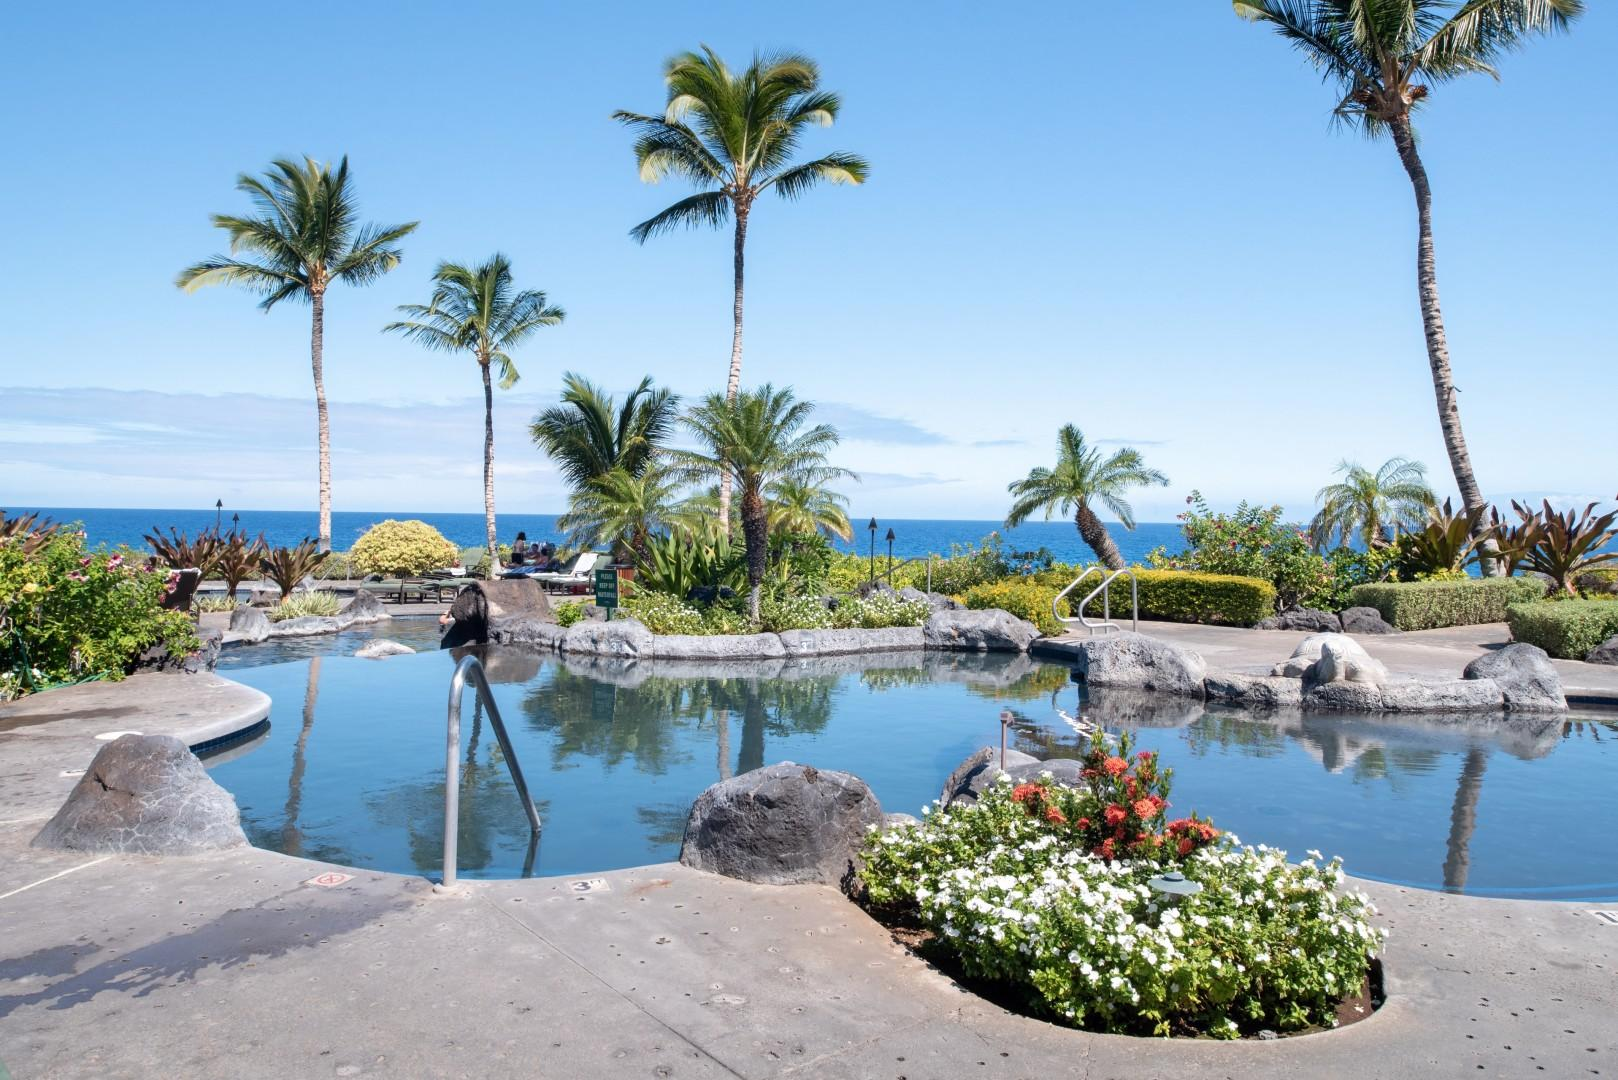 Alternative view of the beautiful lagoon-style pool and ocean view